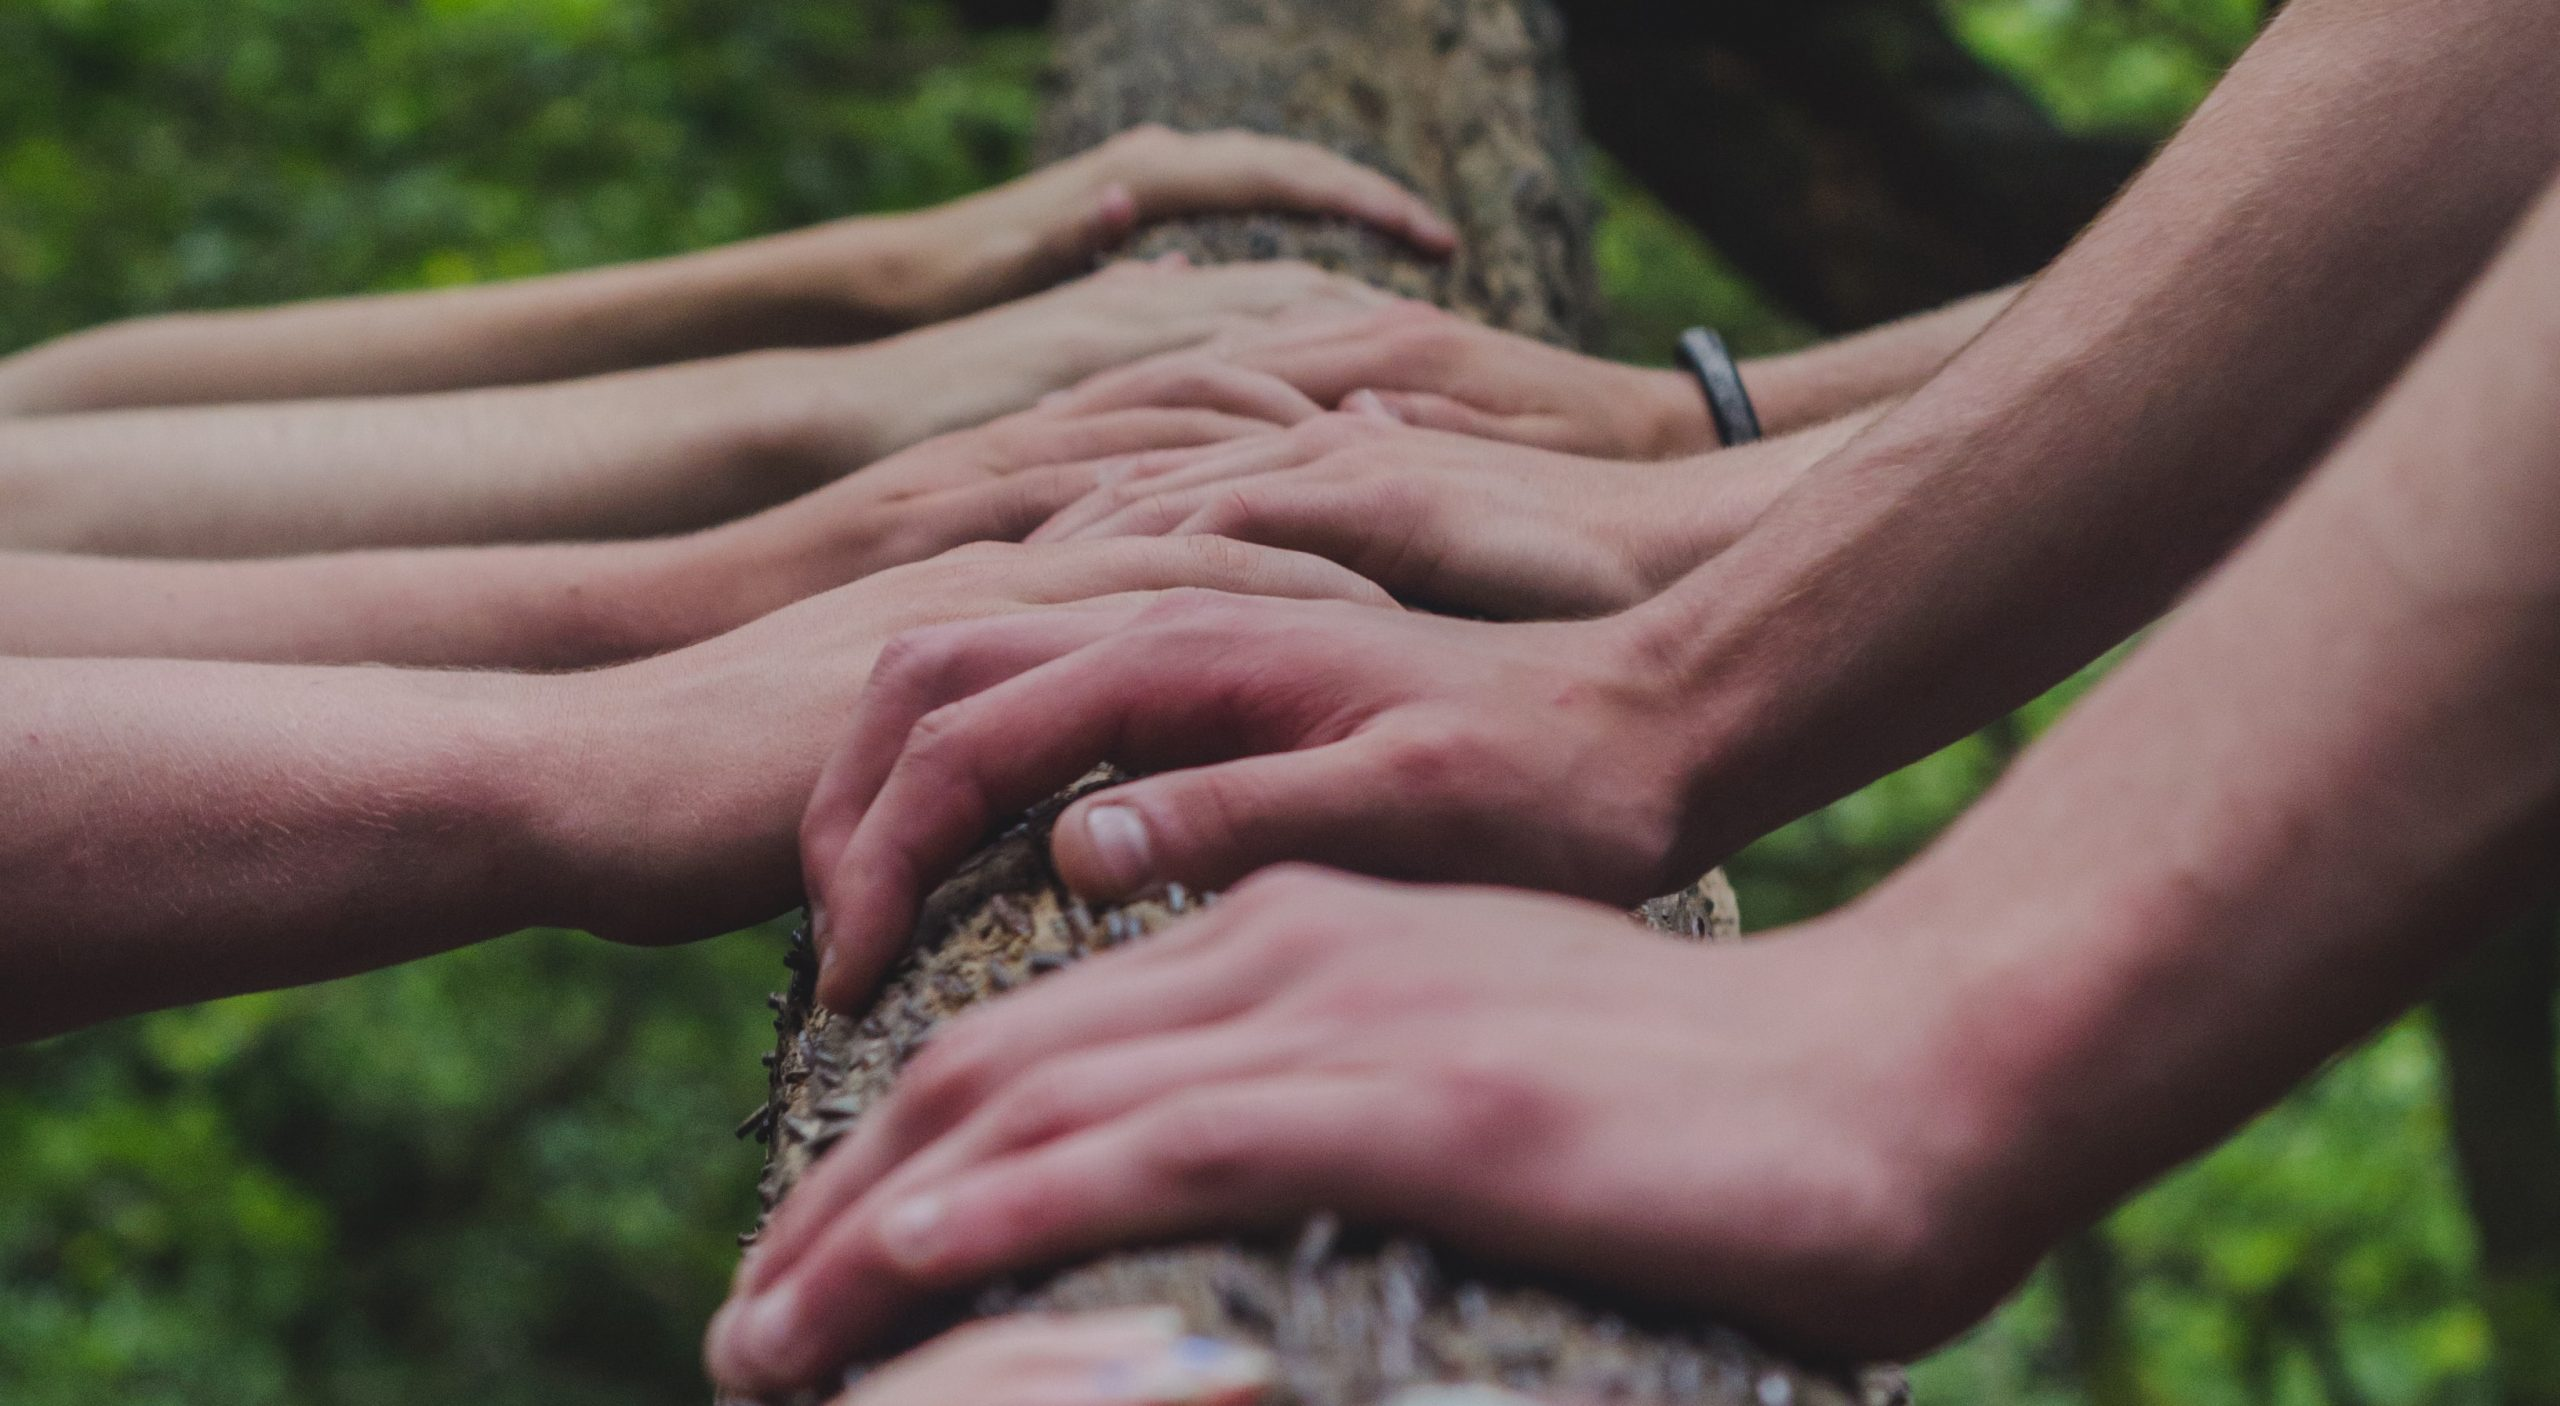 photograph of hands leaning against a tree branch